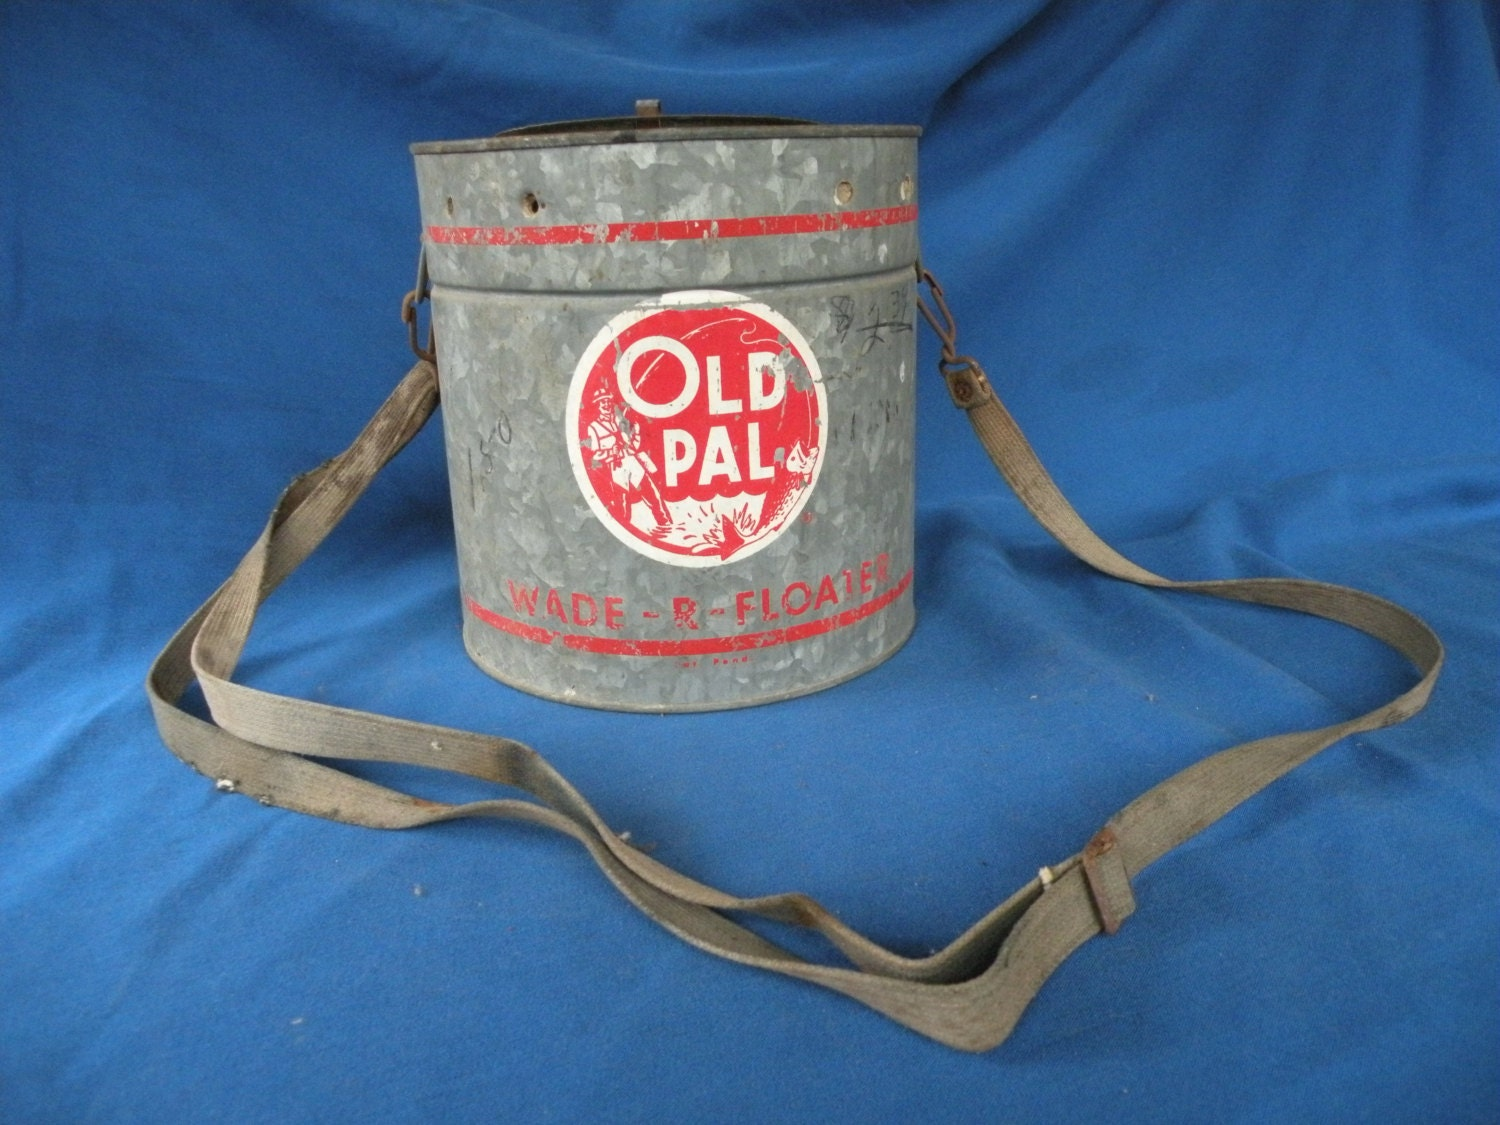 Old Pal, fishing bait galvanized bucket with strap, wade r floater